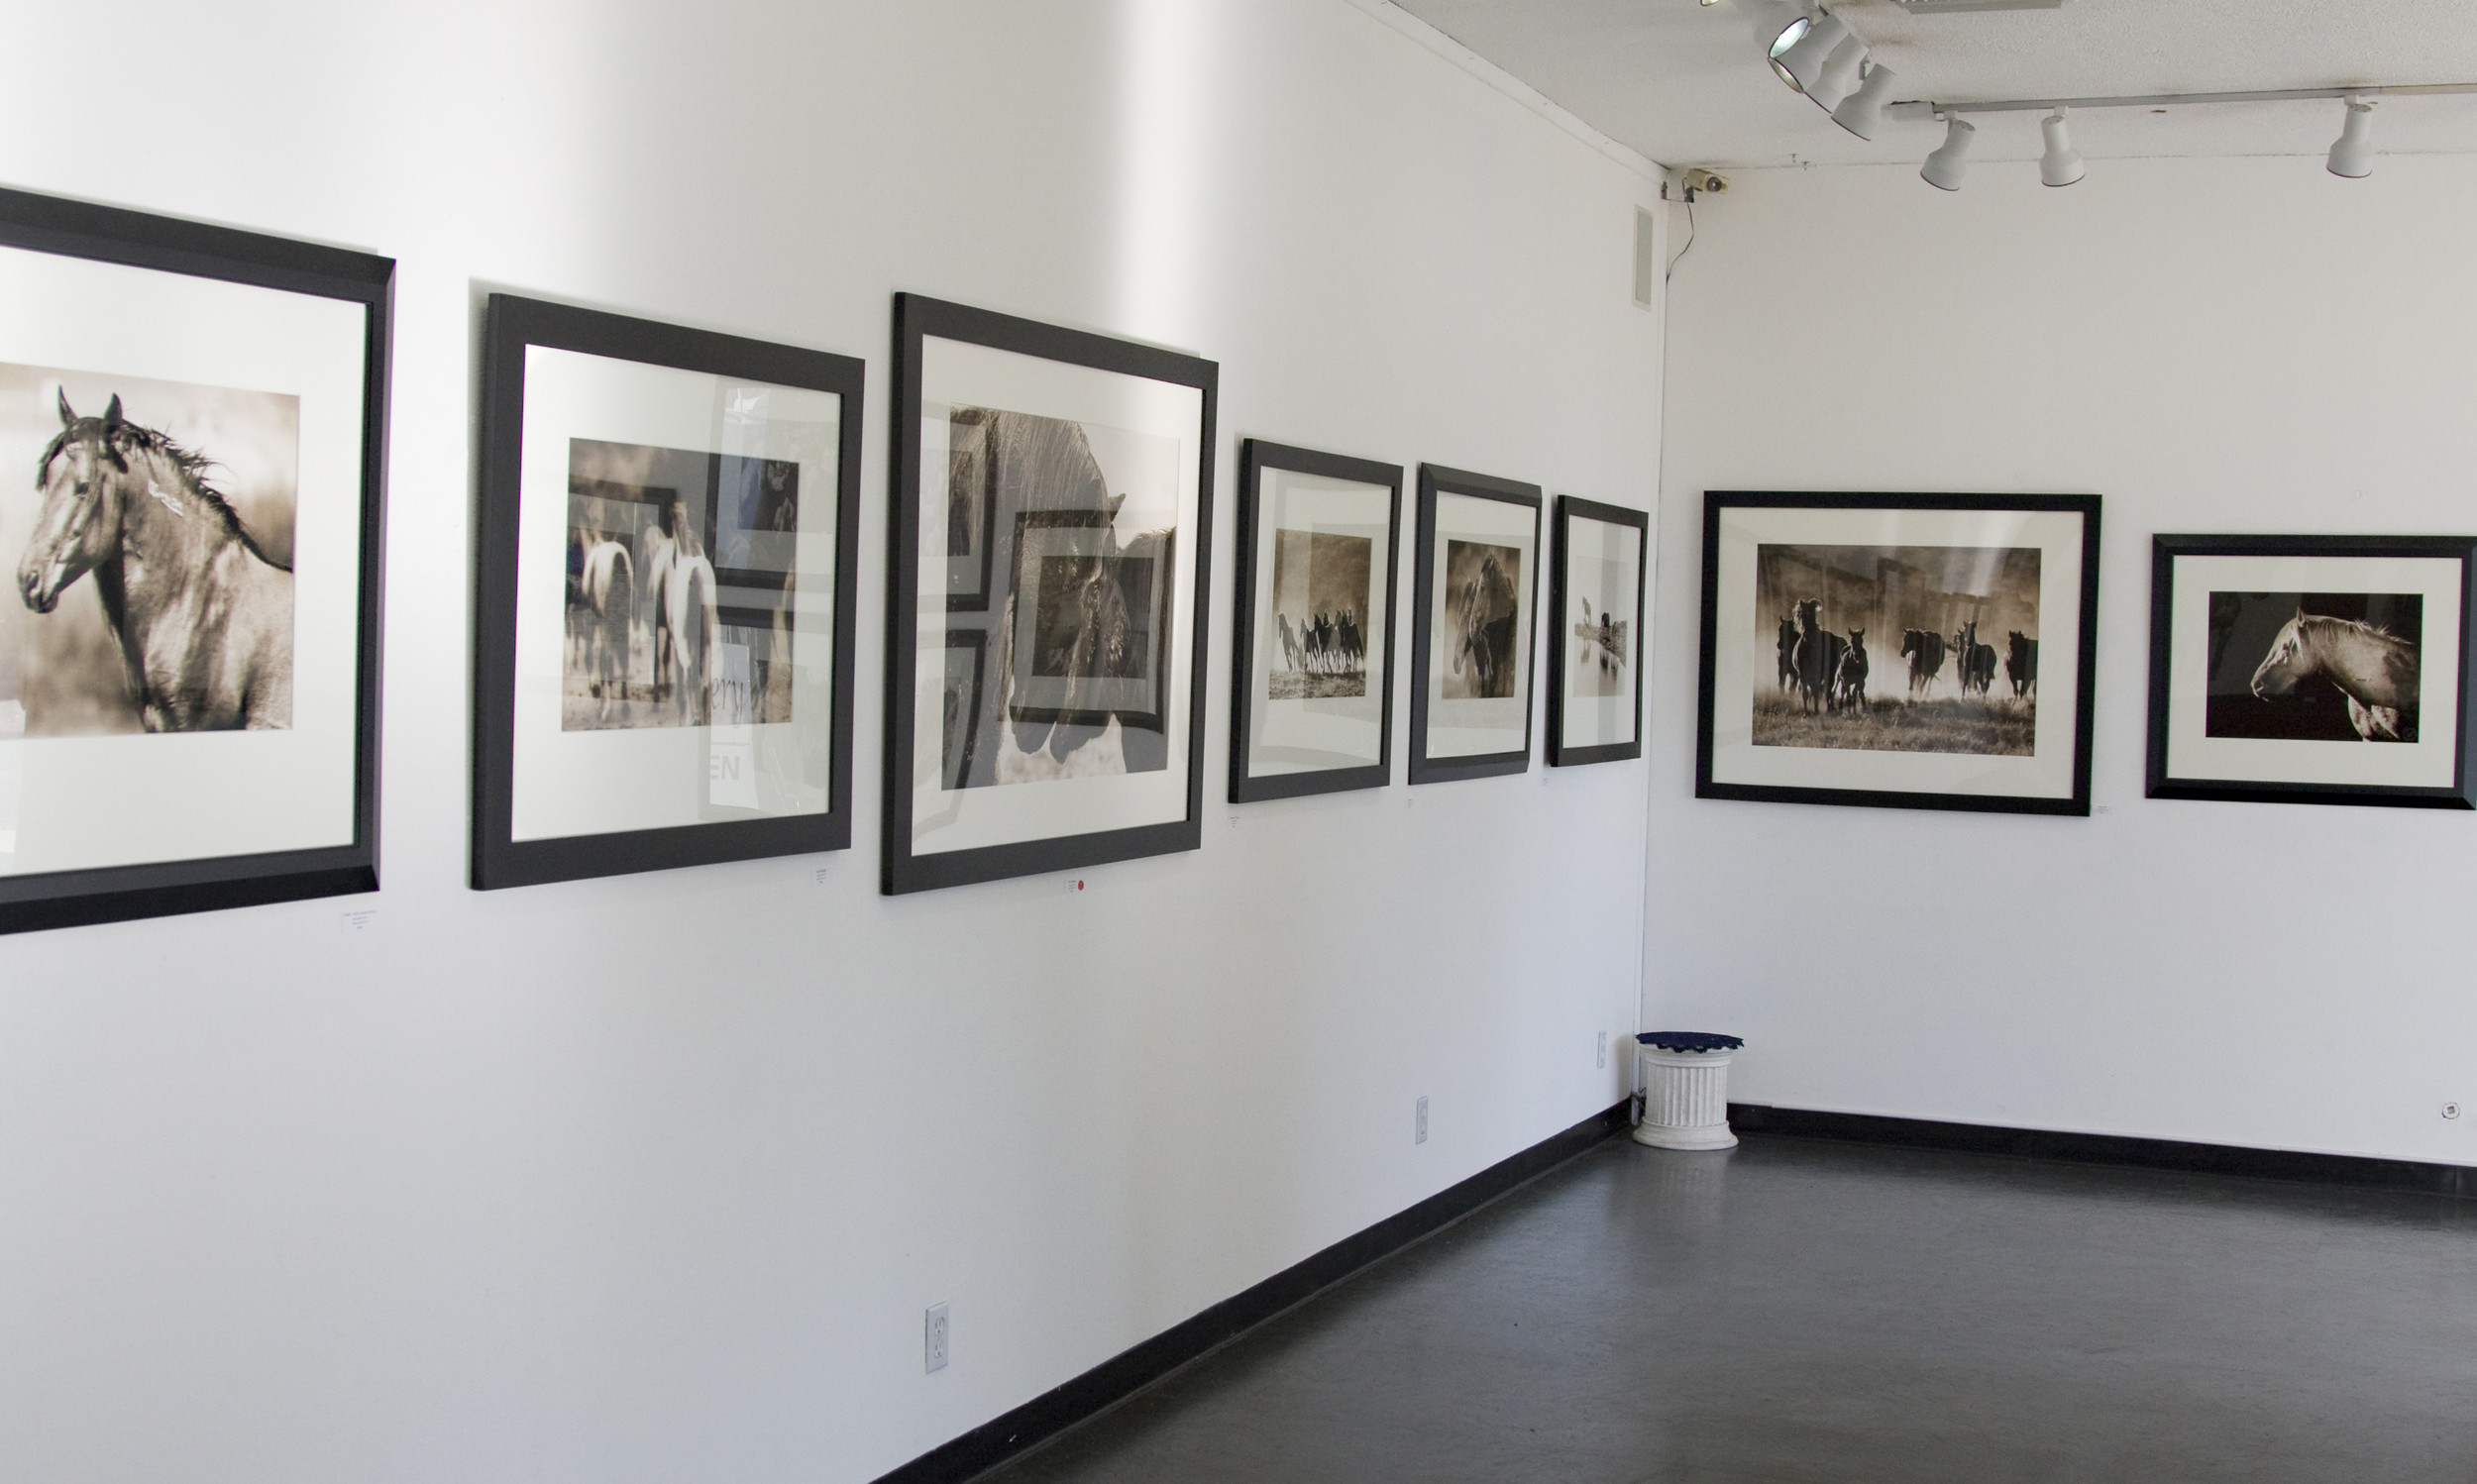 A Studio Gallery - Studio City, CA 2008